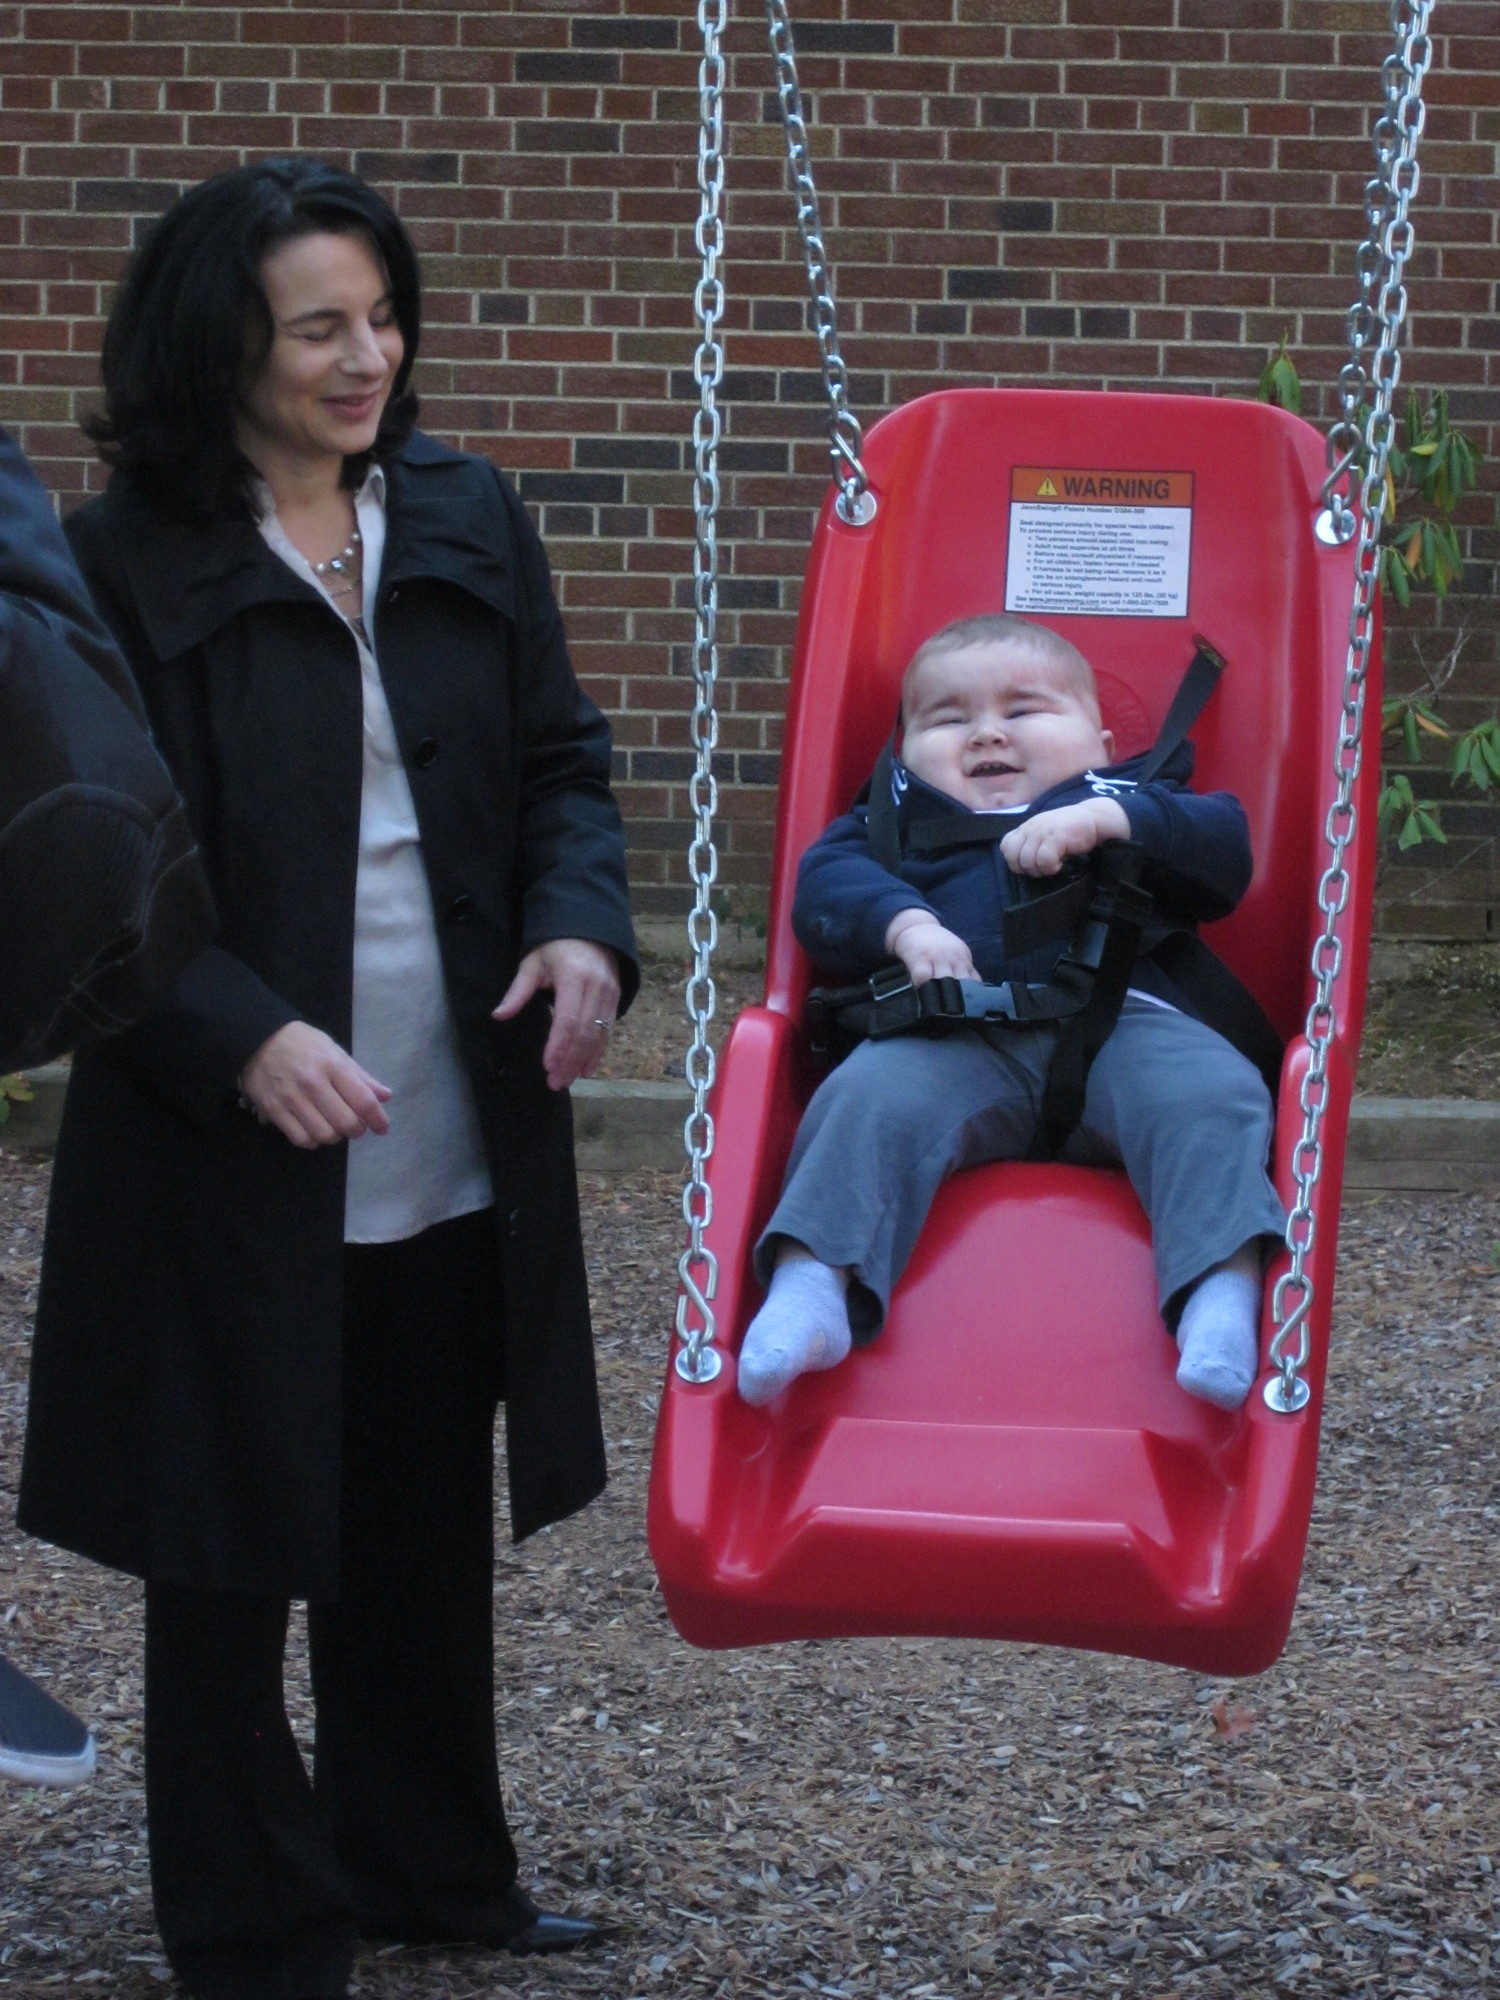 Wendy Abrams watched her son smile through his first ride on the new swing.